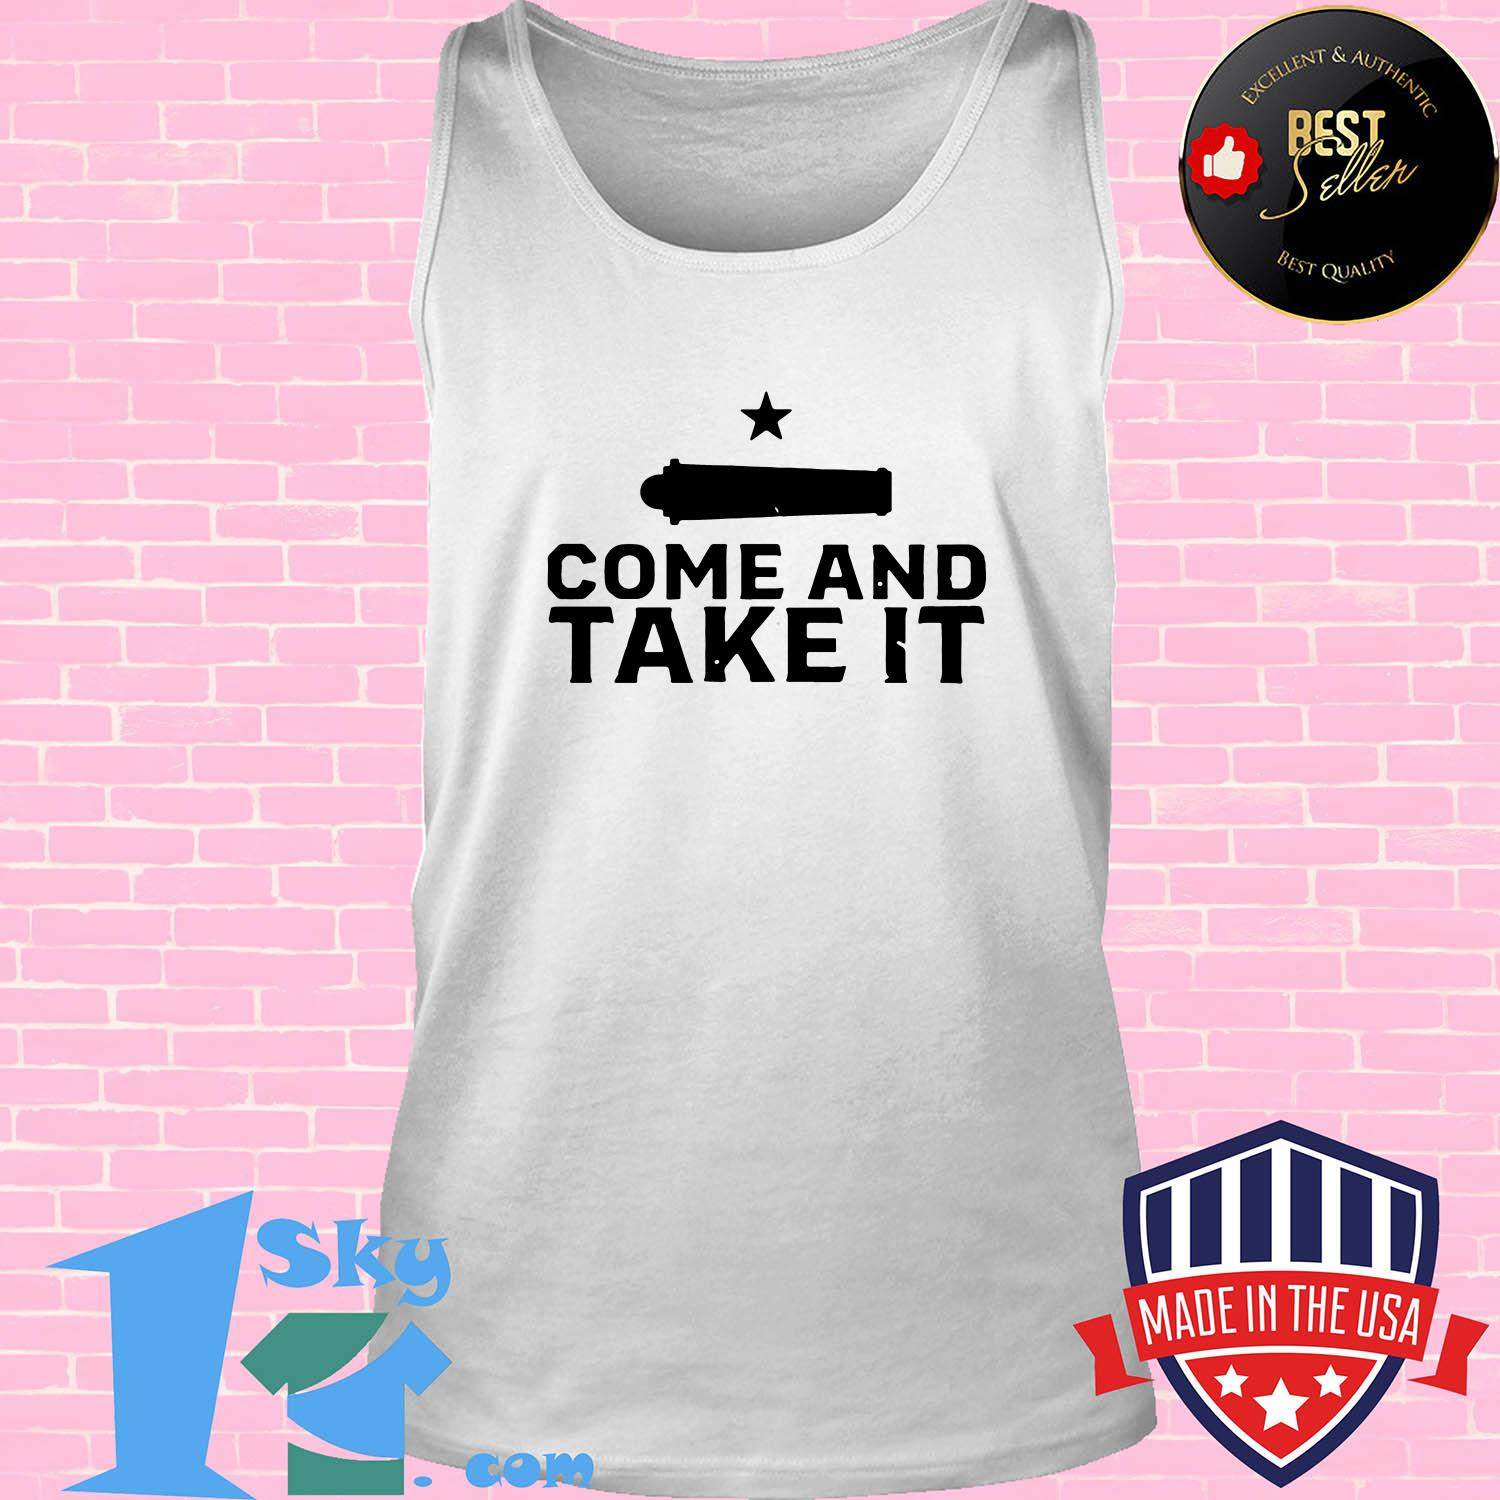 gonzalez come and take it tank top - Gonzalez come and take it shirt